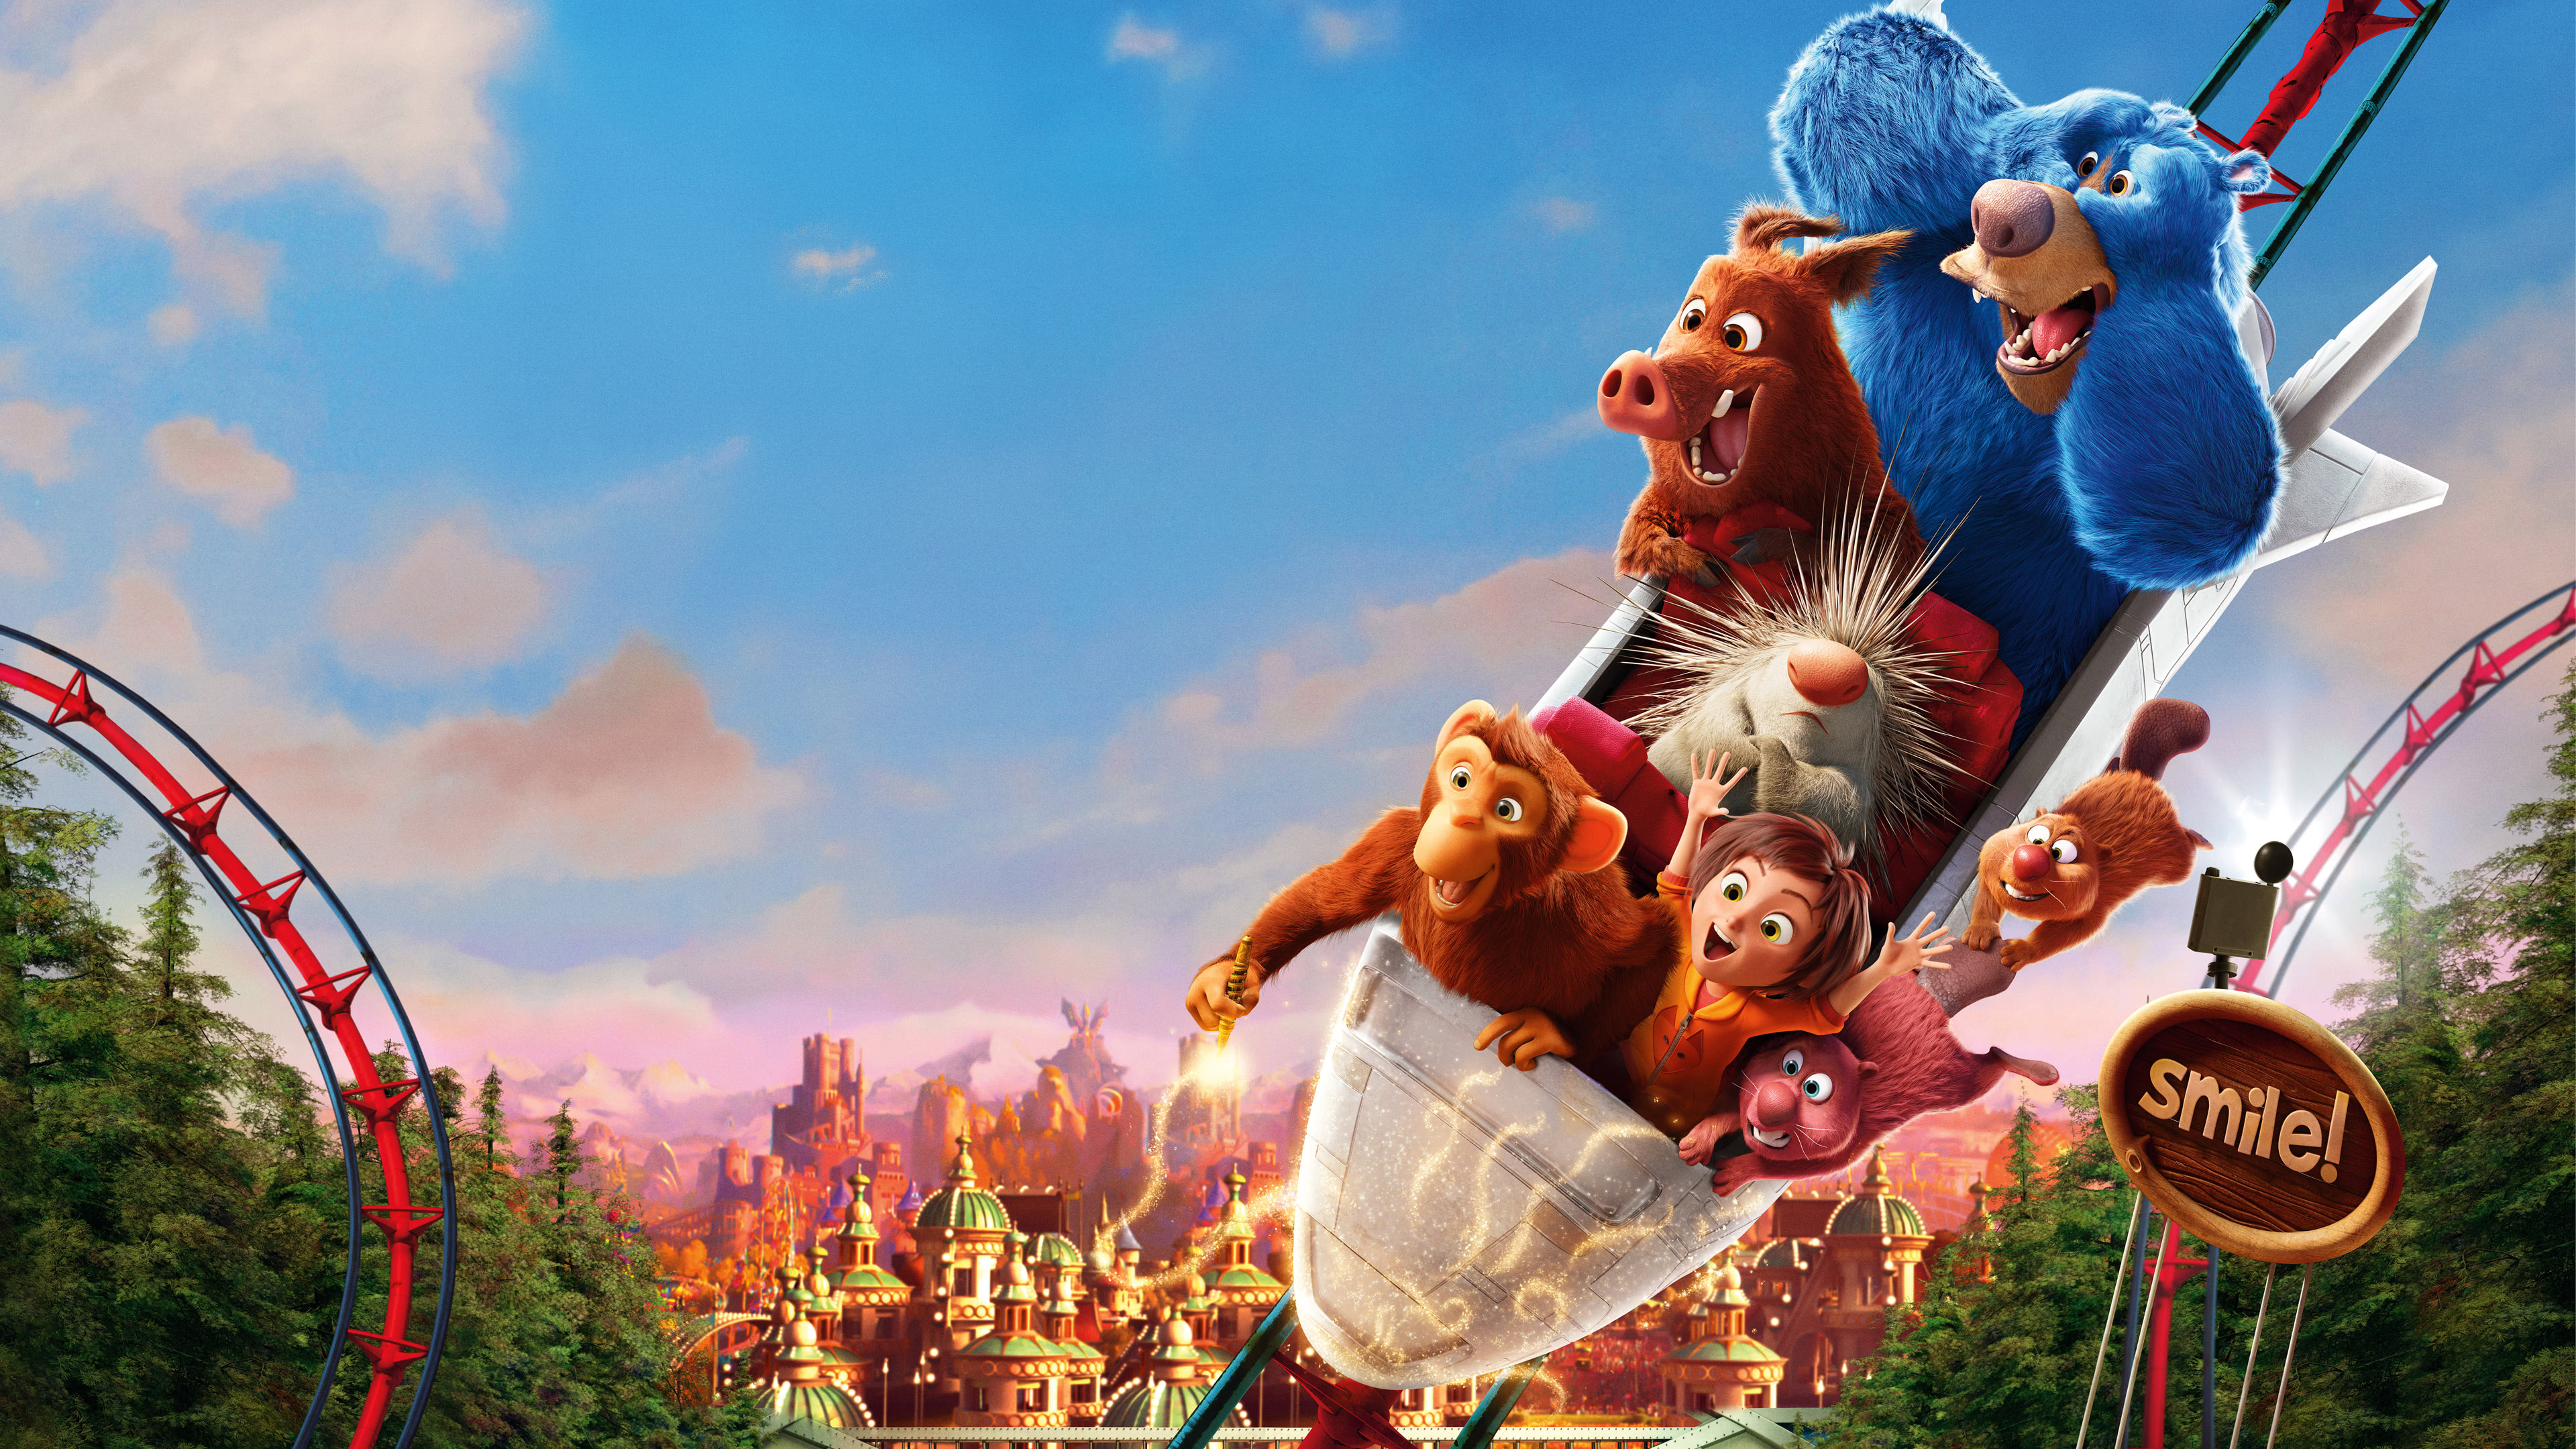 wonder park poster uhd 4k wallpaper